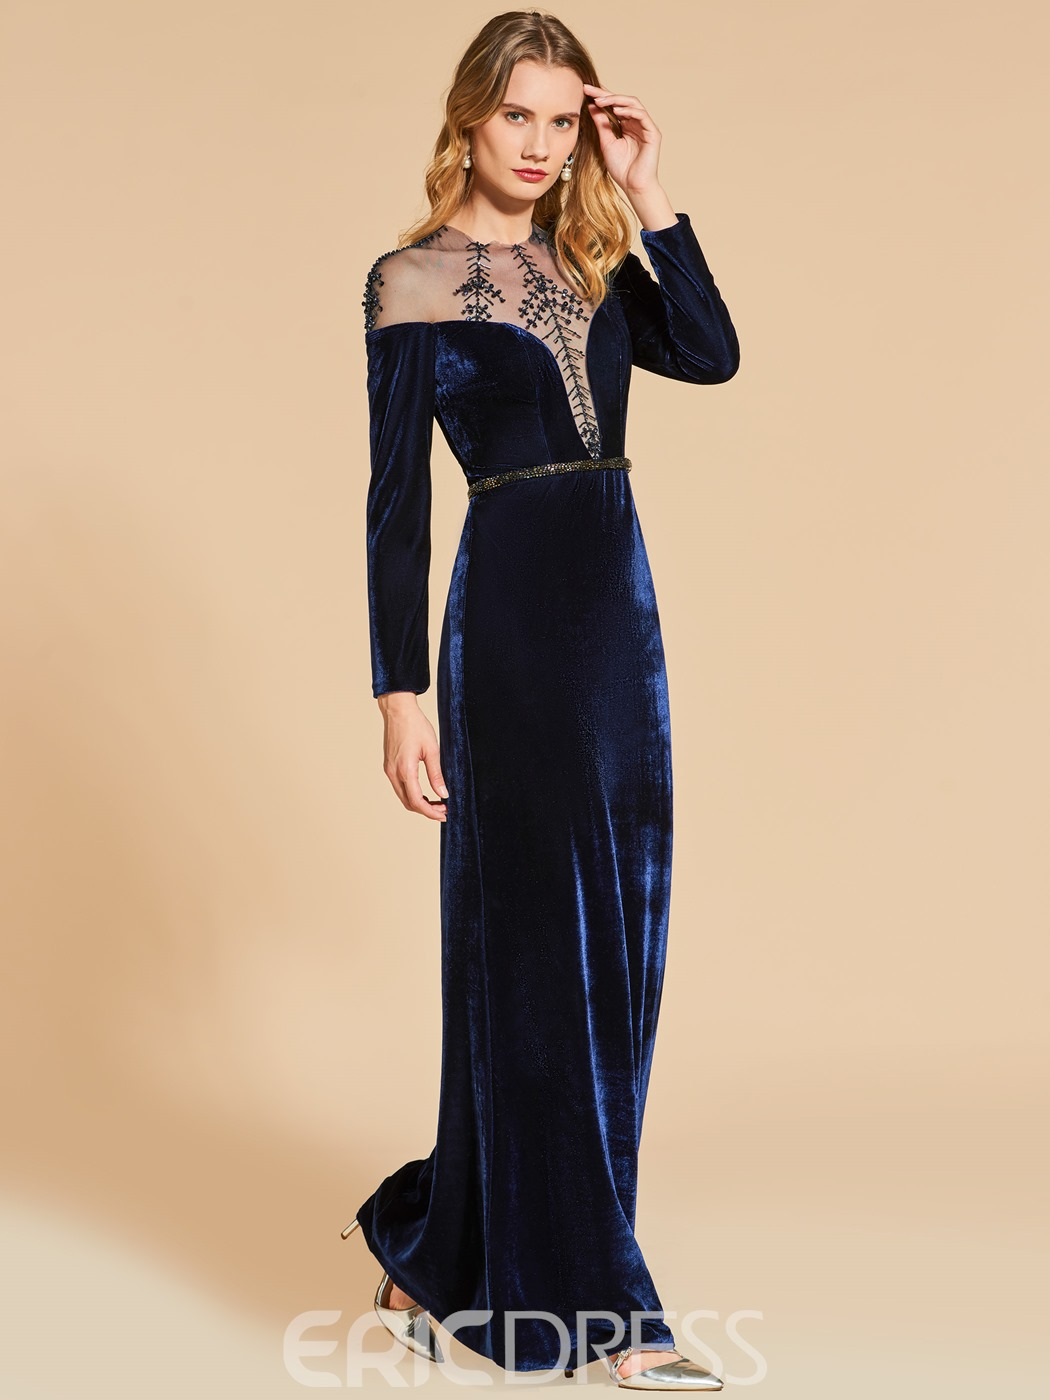 Ericdress Sheath Scoop Neck Beaded Velvet Long Sleeve Evening Dress